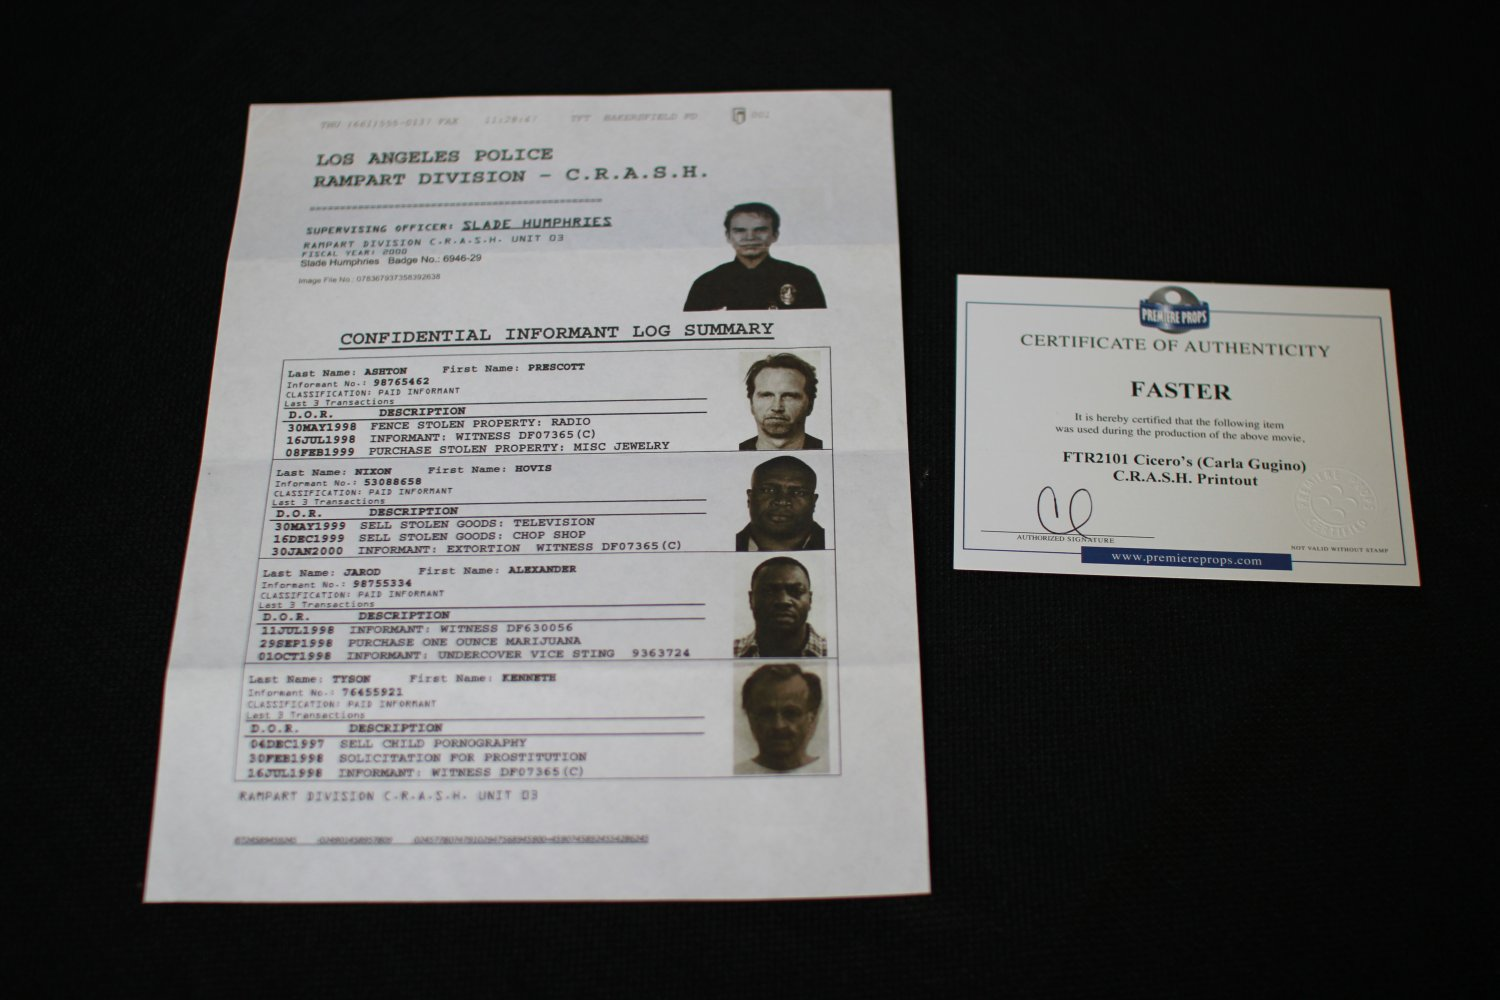 Faster C.R.A.S.H. fax printout movie prop with Billy Bob Thornton on it